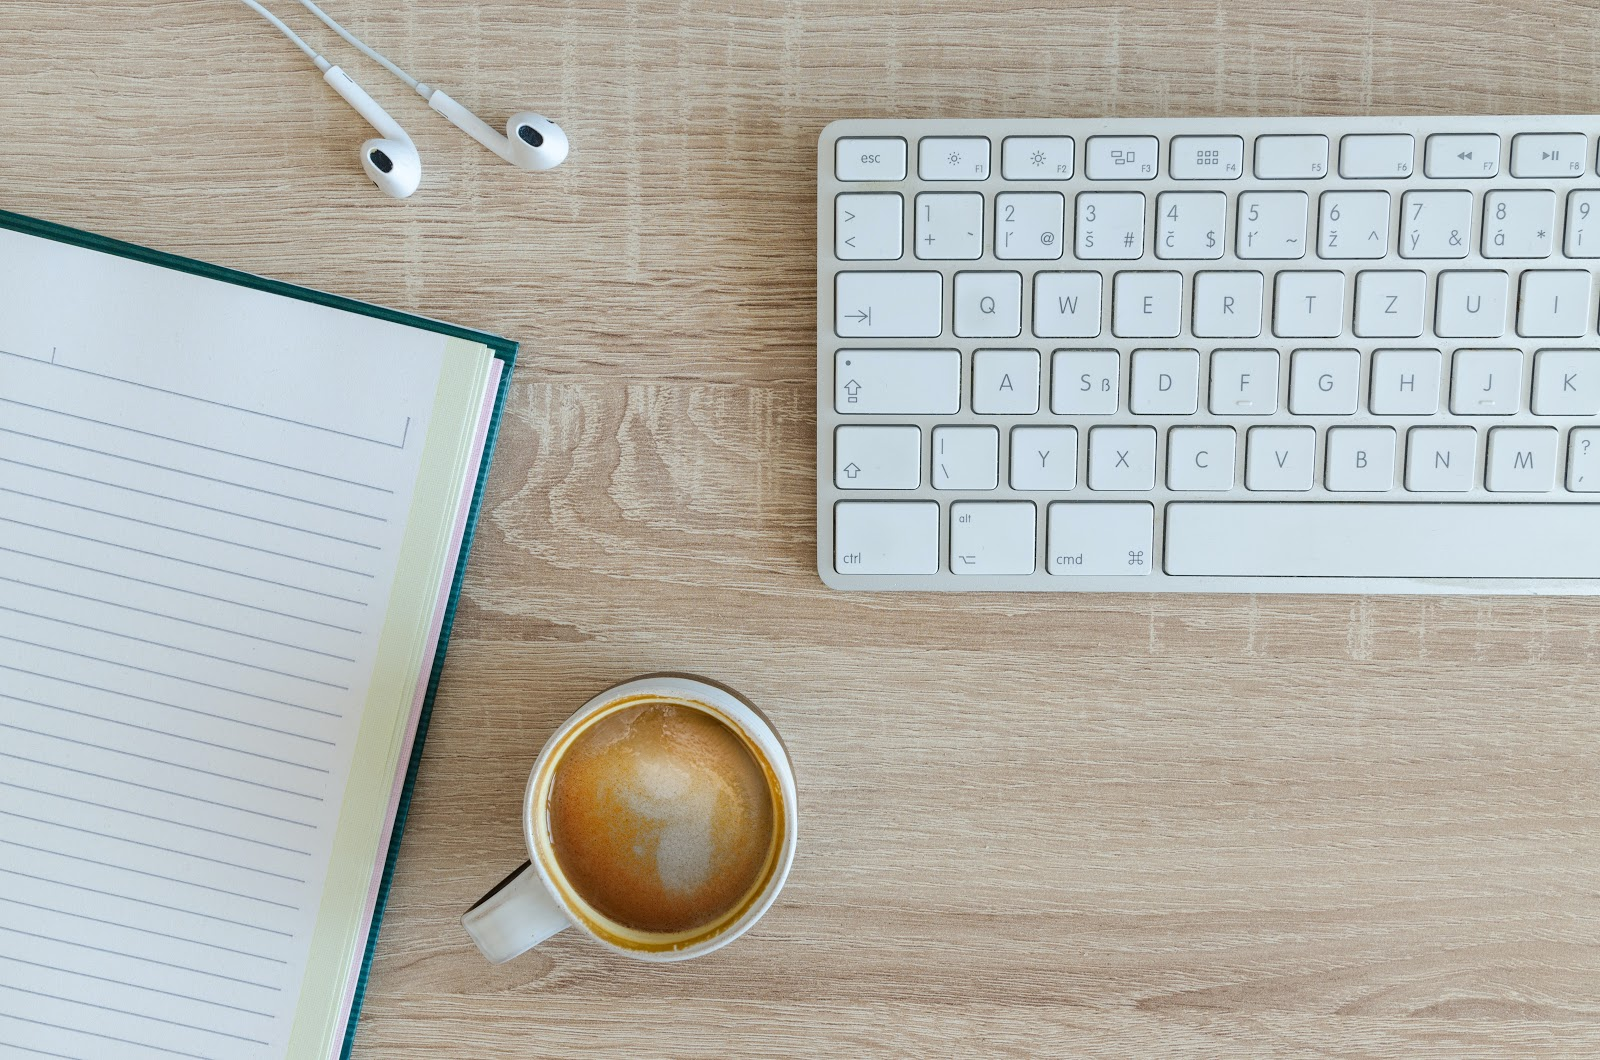 Keyboard, notepad, coffee cup and earbuds on a wooden surface.